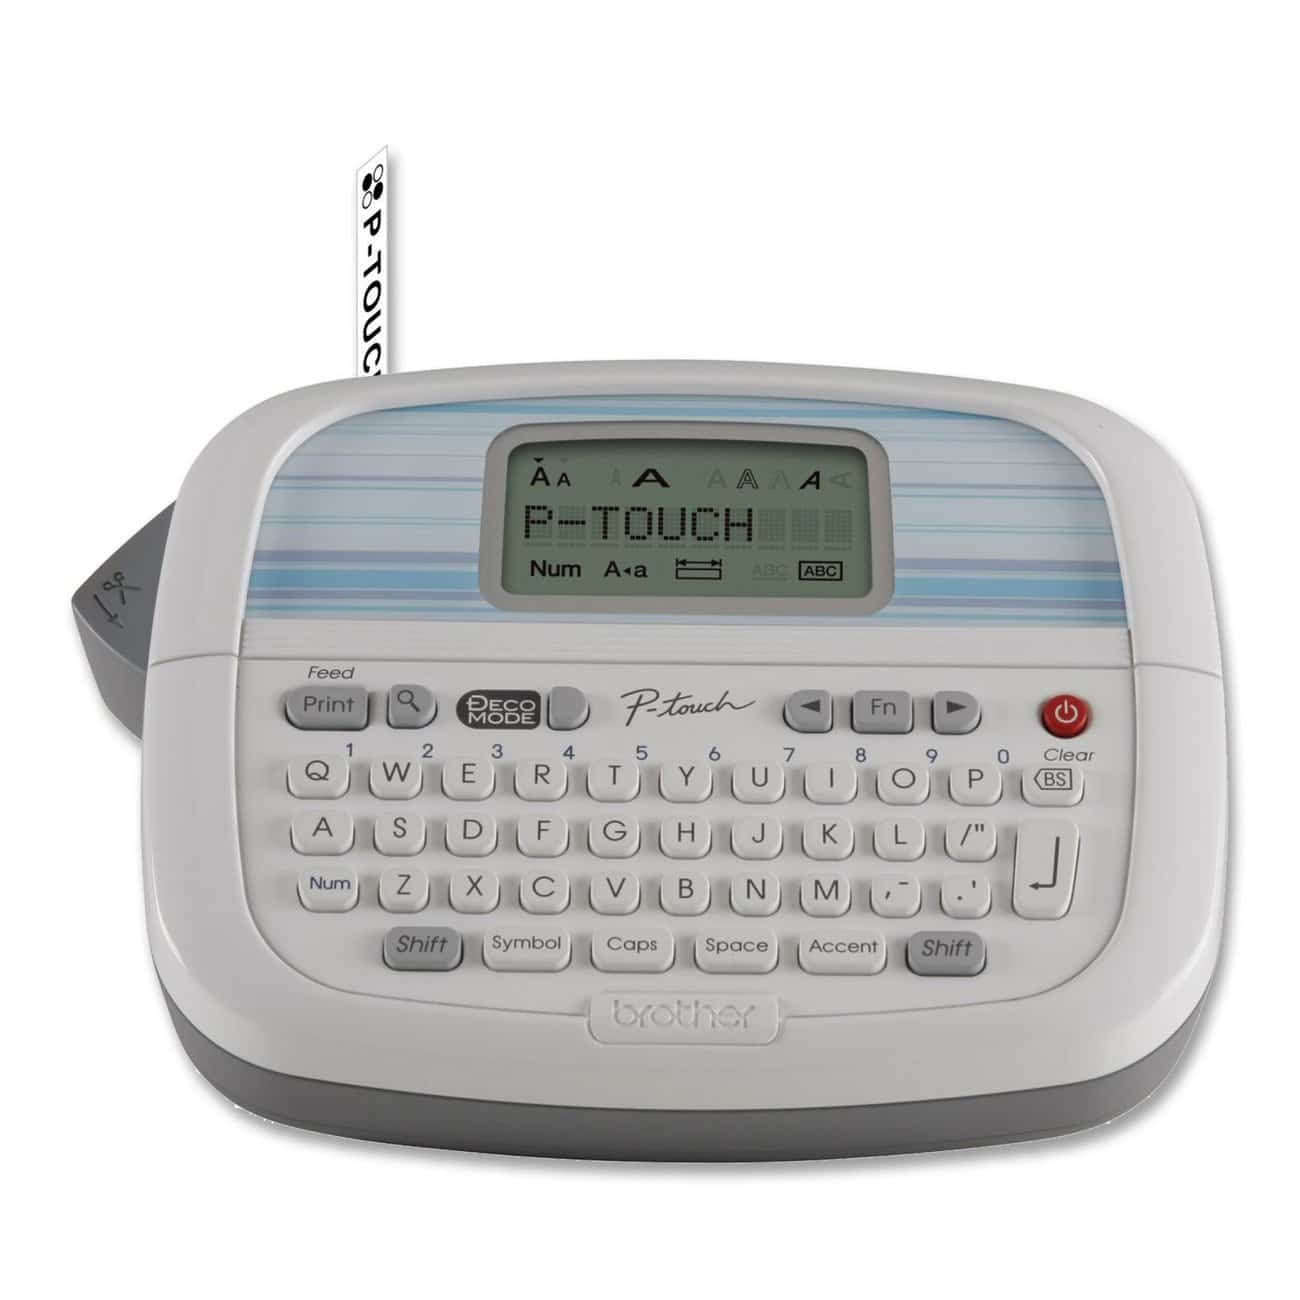 Professional Organizer's Guide to Label Makers